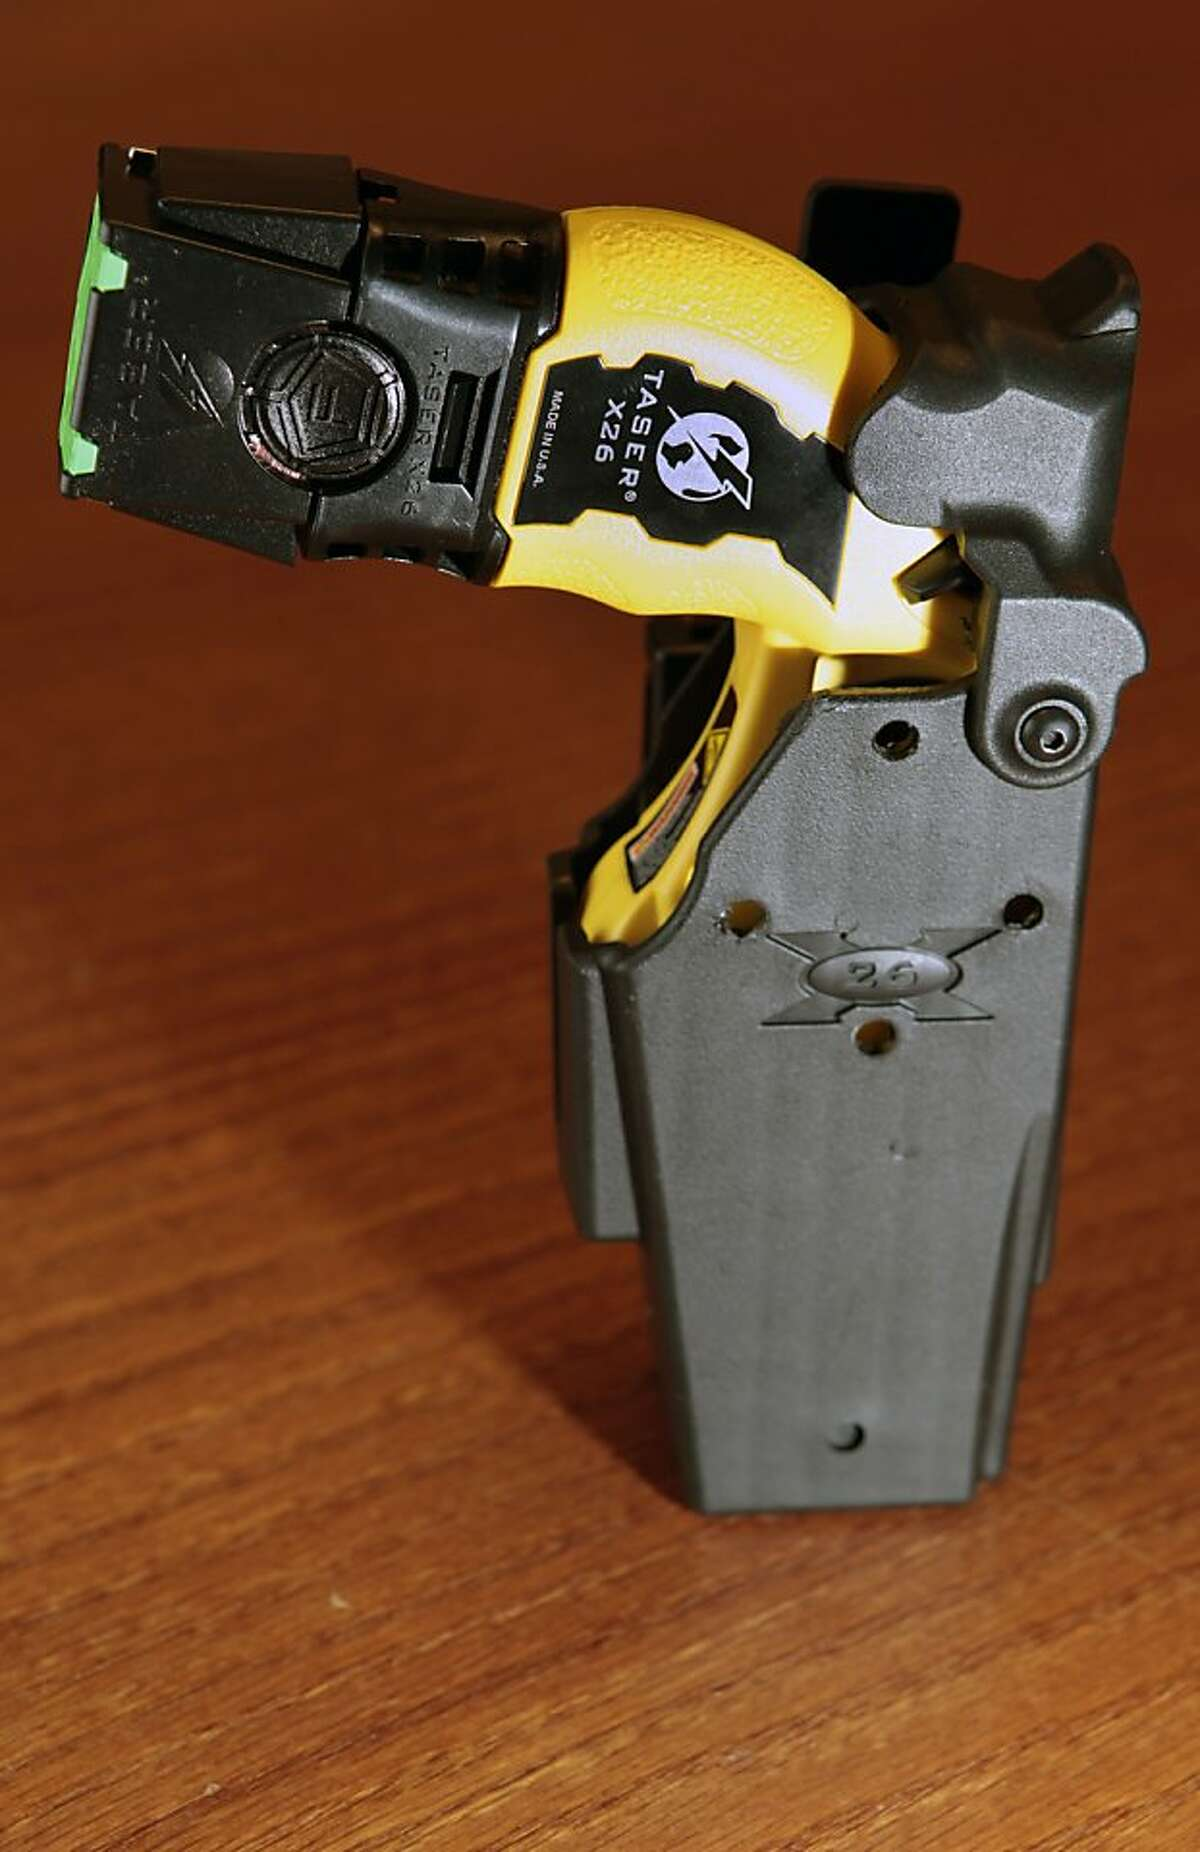 BART Police made available a Taser gun and holsters shared by fellow officers the night Oscar Grant was shot.